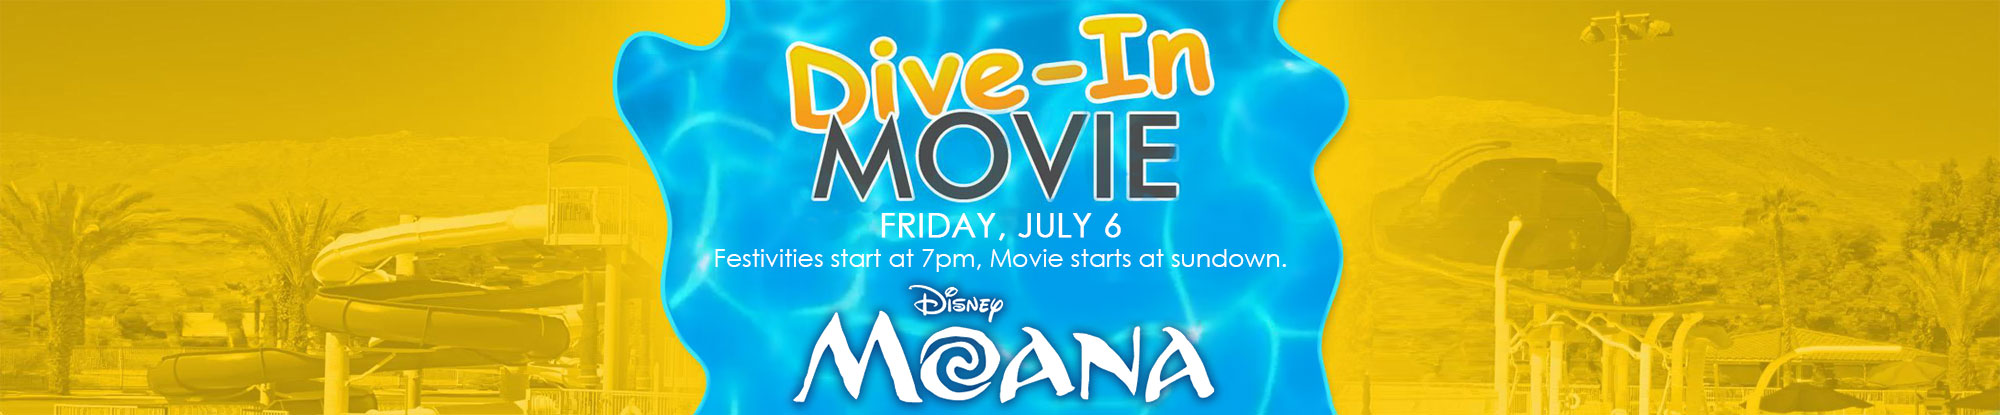 Dive-in Movie: Moana